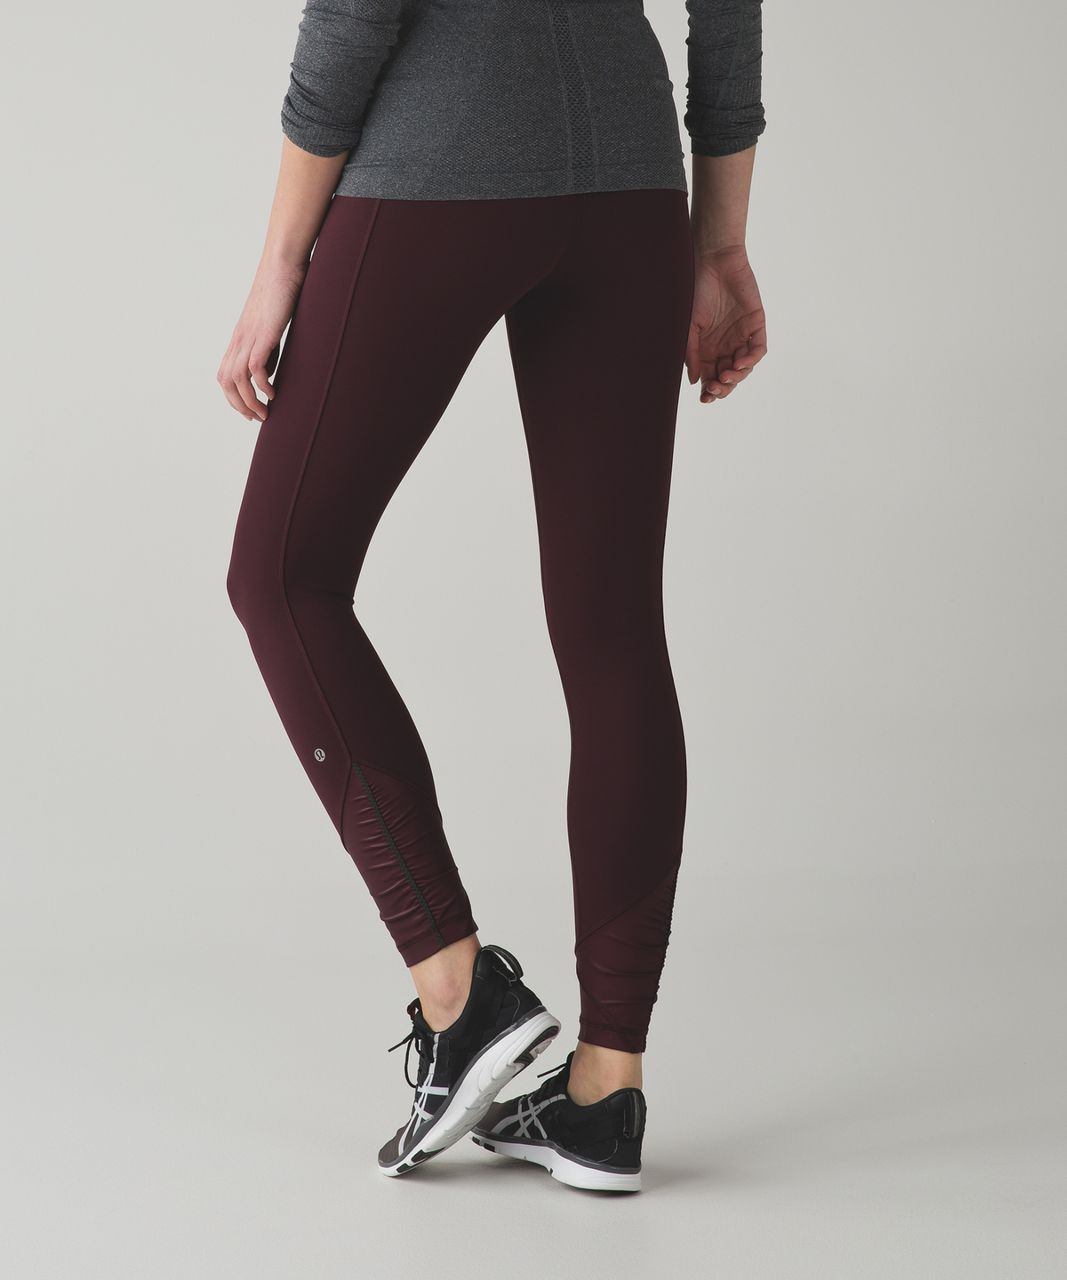 Lululemon Pace Queen Tight *Full-On Luxtreme - Bordeaux Drama / Raspberry